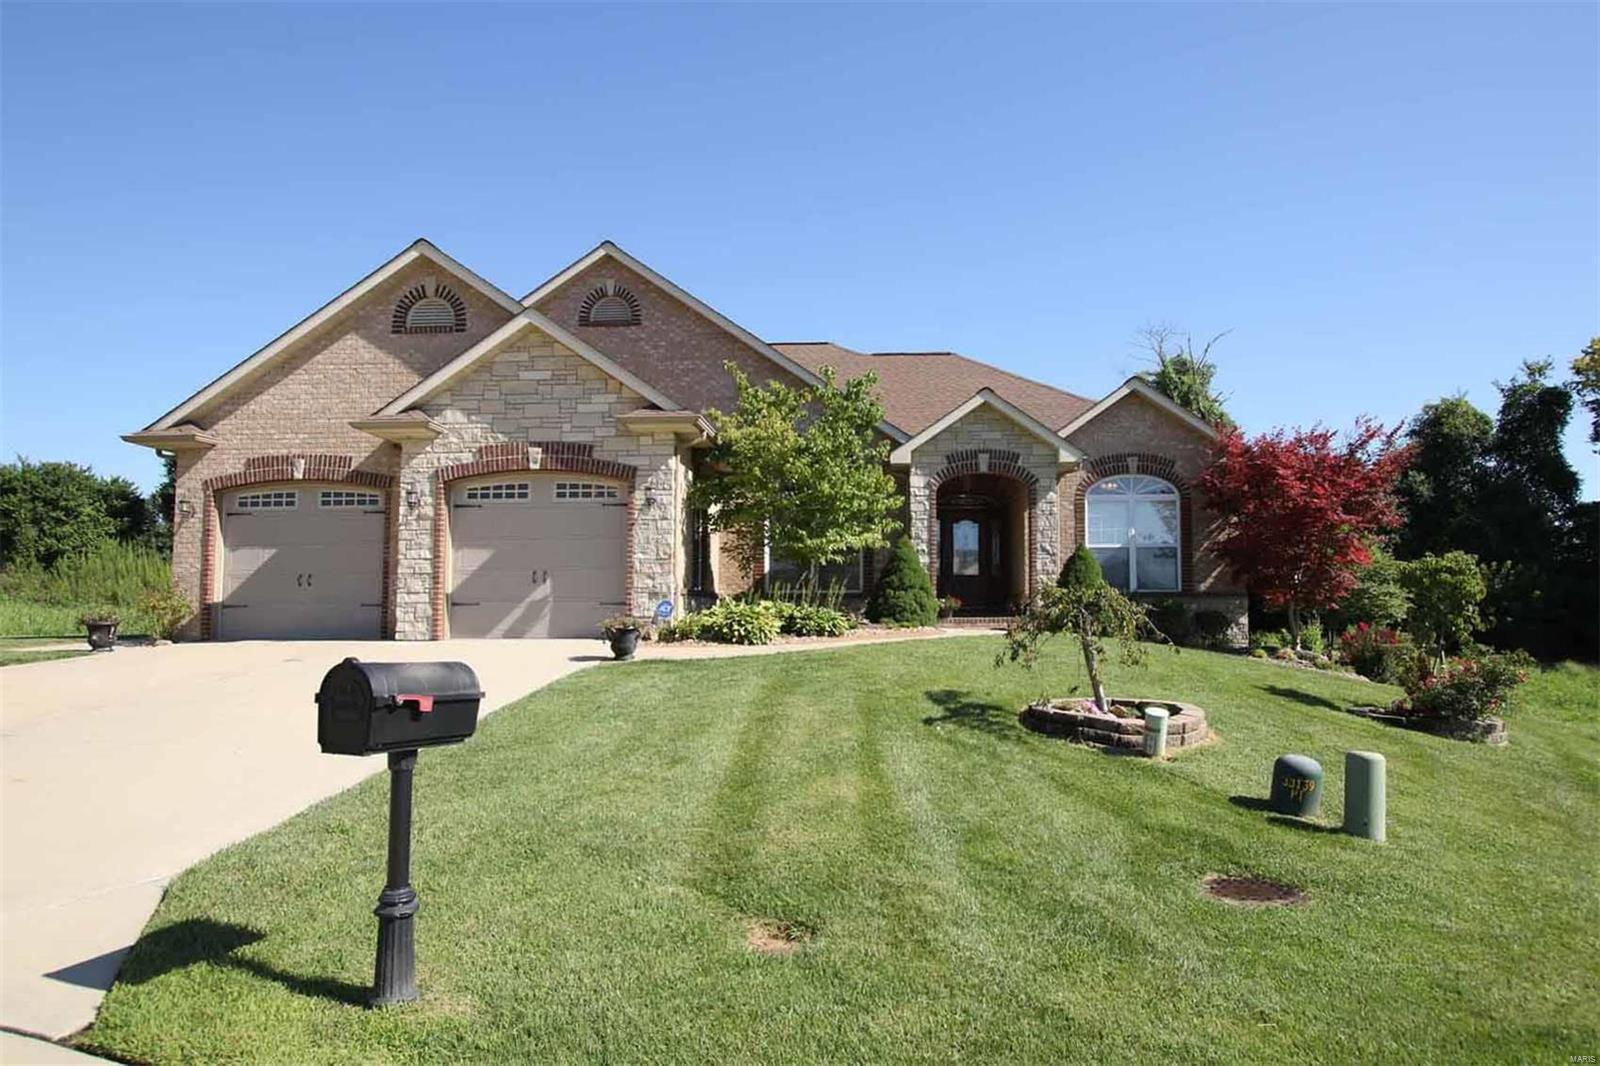 1237 Pebble Beach Drive Property Photo - Caseyville, IL real estate listing